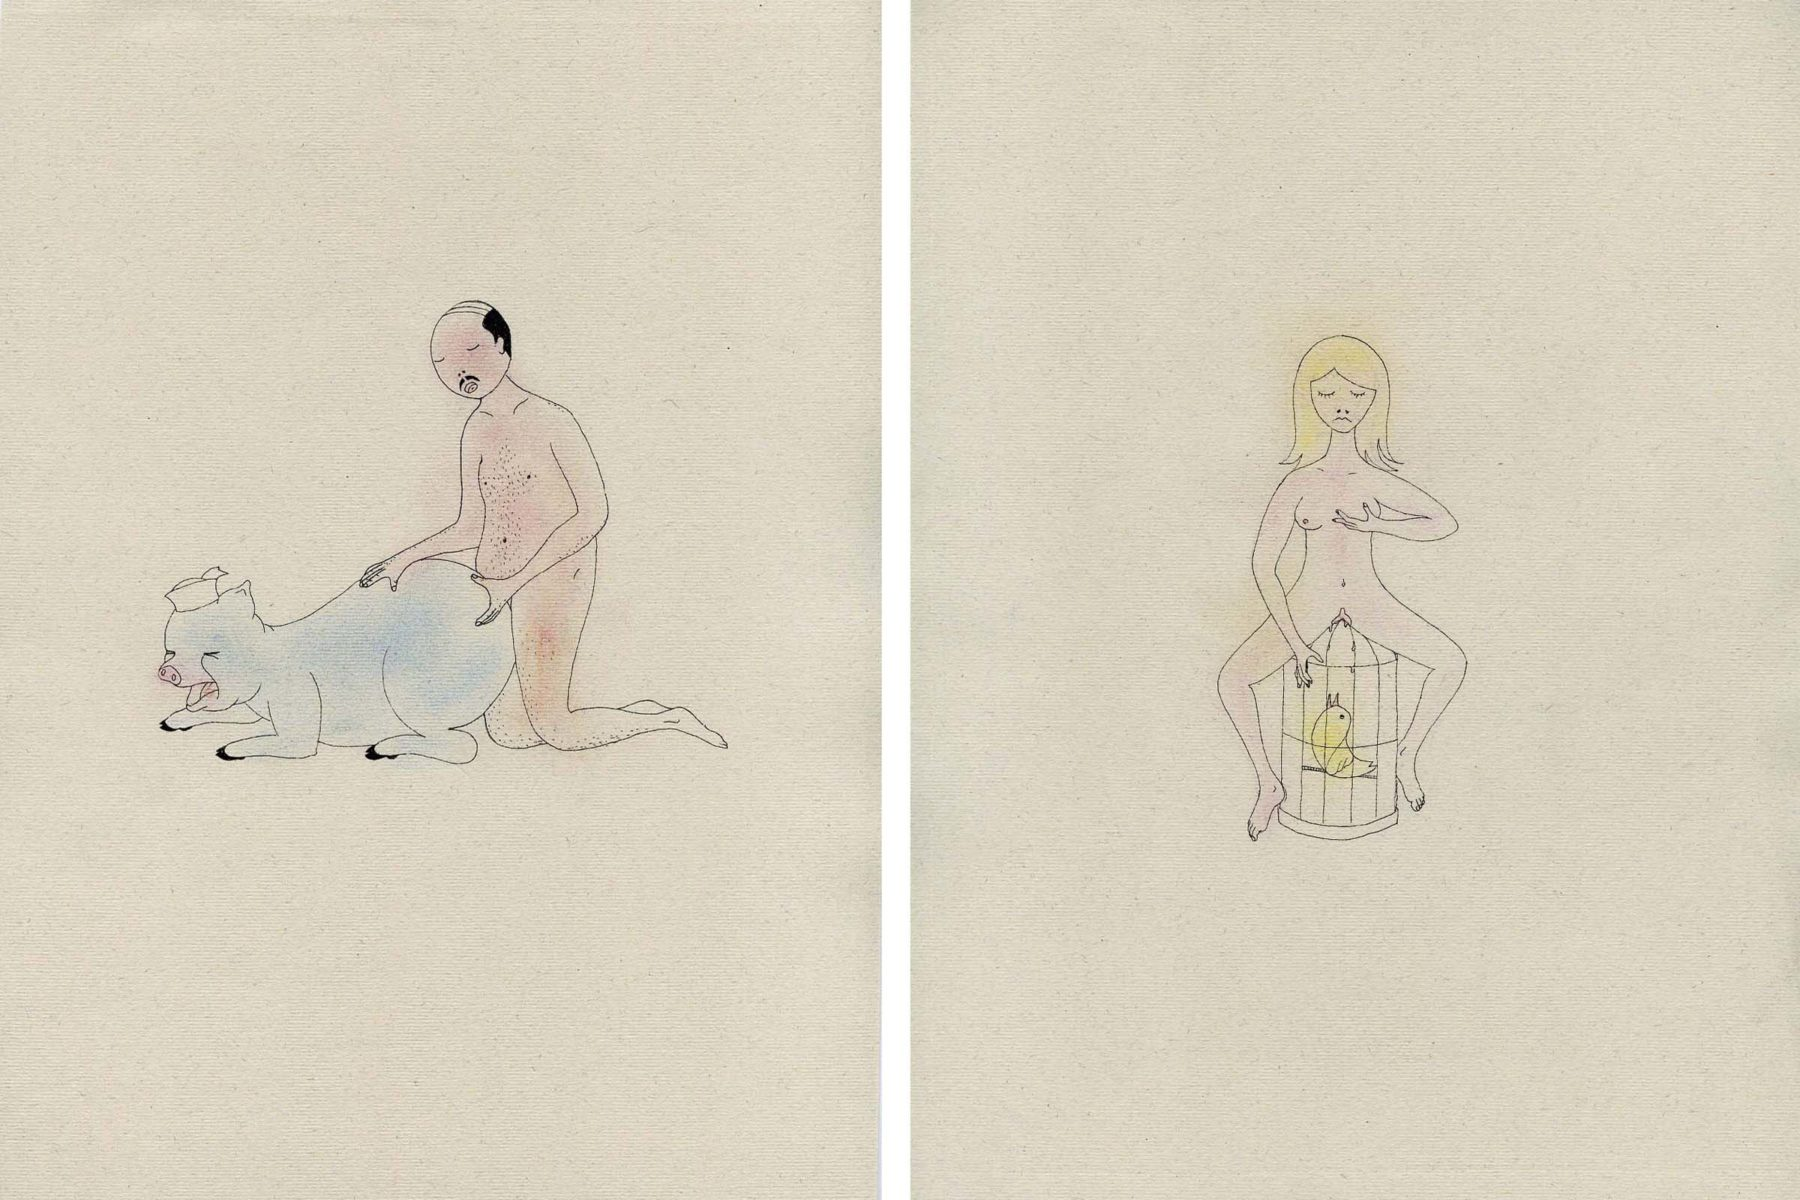 Ryts Monet, Pornografie, 2011, six drawings, ink and pastelcrayon on paper, 21.0 x 29.7 cm each